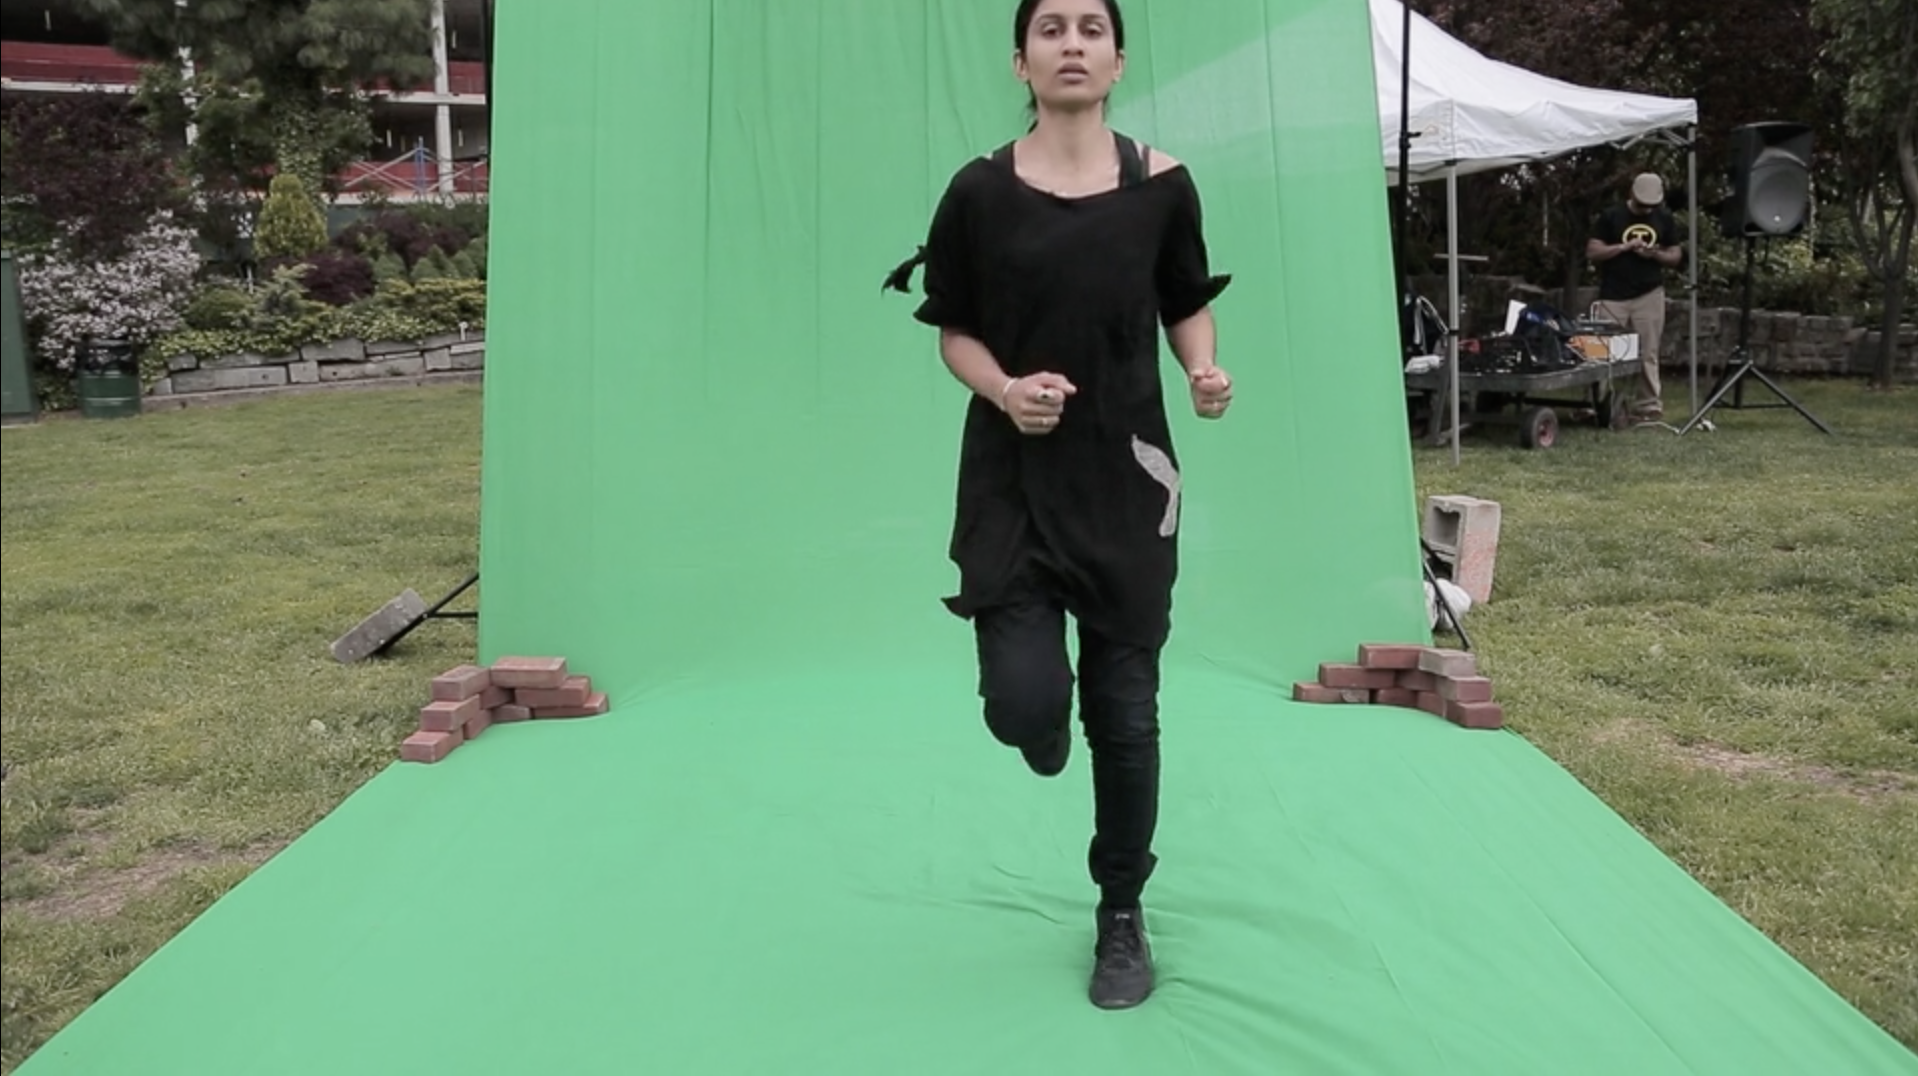 Planet Fitness,  2016  Running before a blank green screen in a NYC public park, set to a custom soundtrack mix I often use to run as a form of meditation. The soundtrack includes Sufi musician Nustrat Fateh Ali Khan, Belgium pop star Robyn, and renowned Indian vocalist Lata Mangeshkar. My ritual of resilience speaks to experiences of displacement within the United States, and more prominently in Europe. Project me where every you wish, there is a green screen provided for your leisure.  20 minute running performance set to a custom soundtrack.